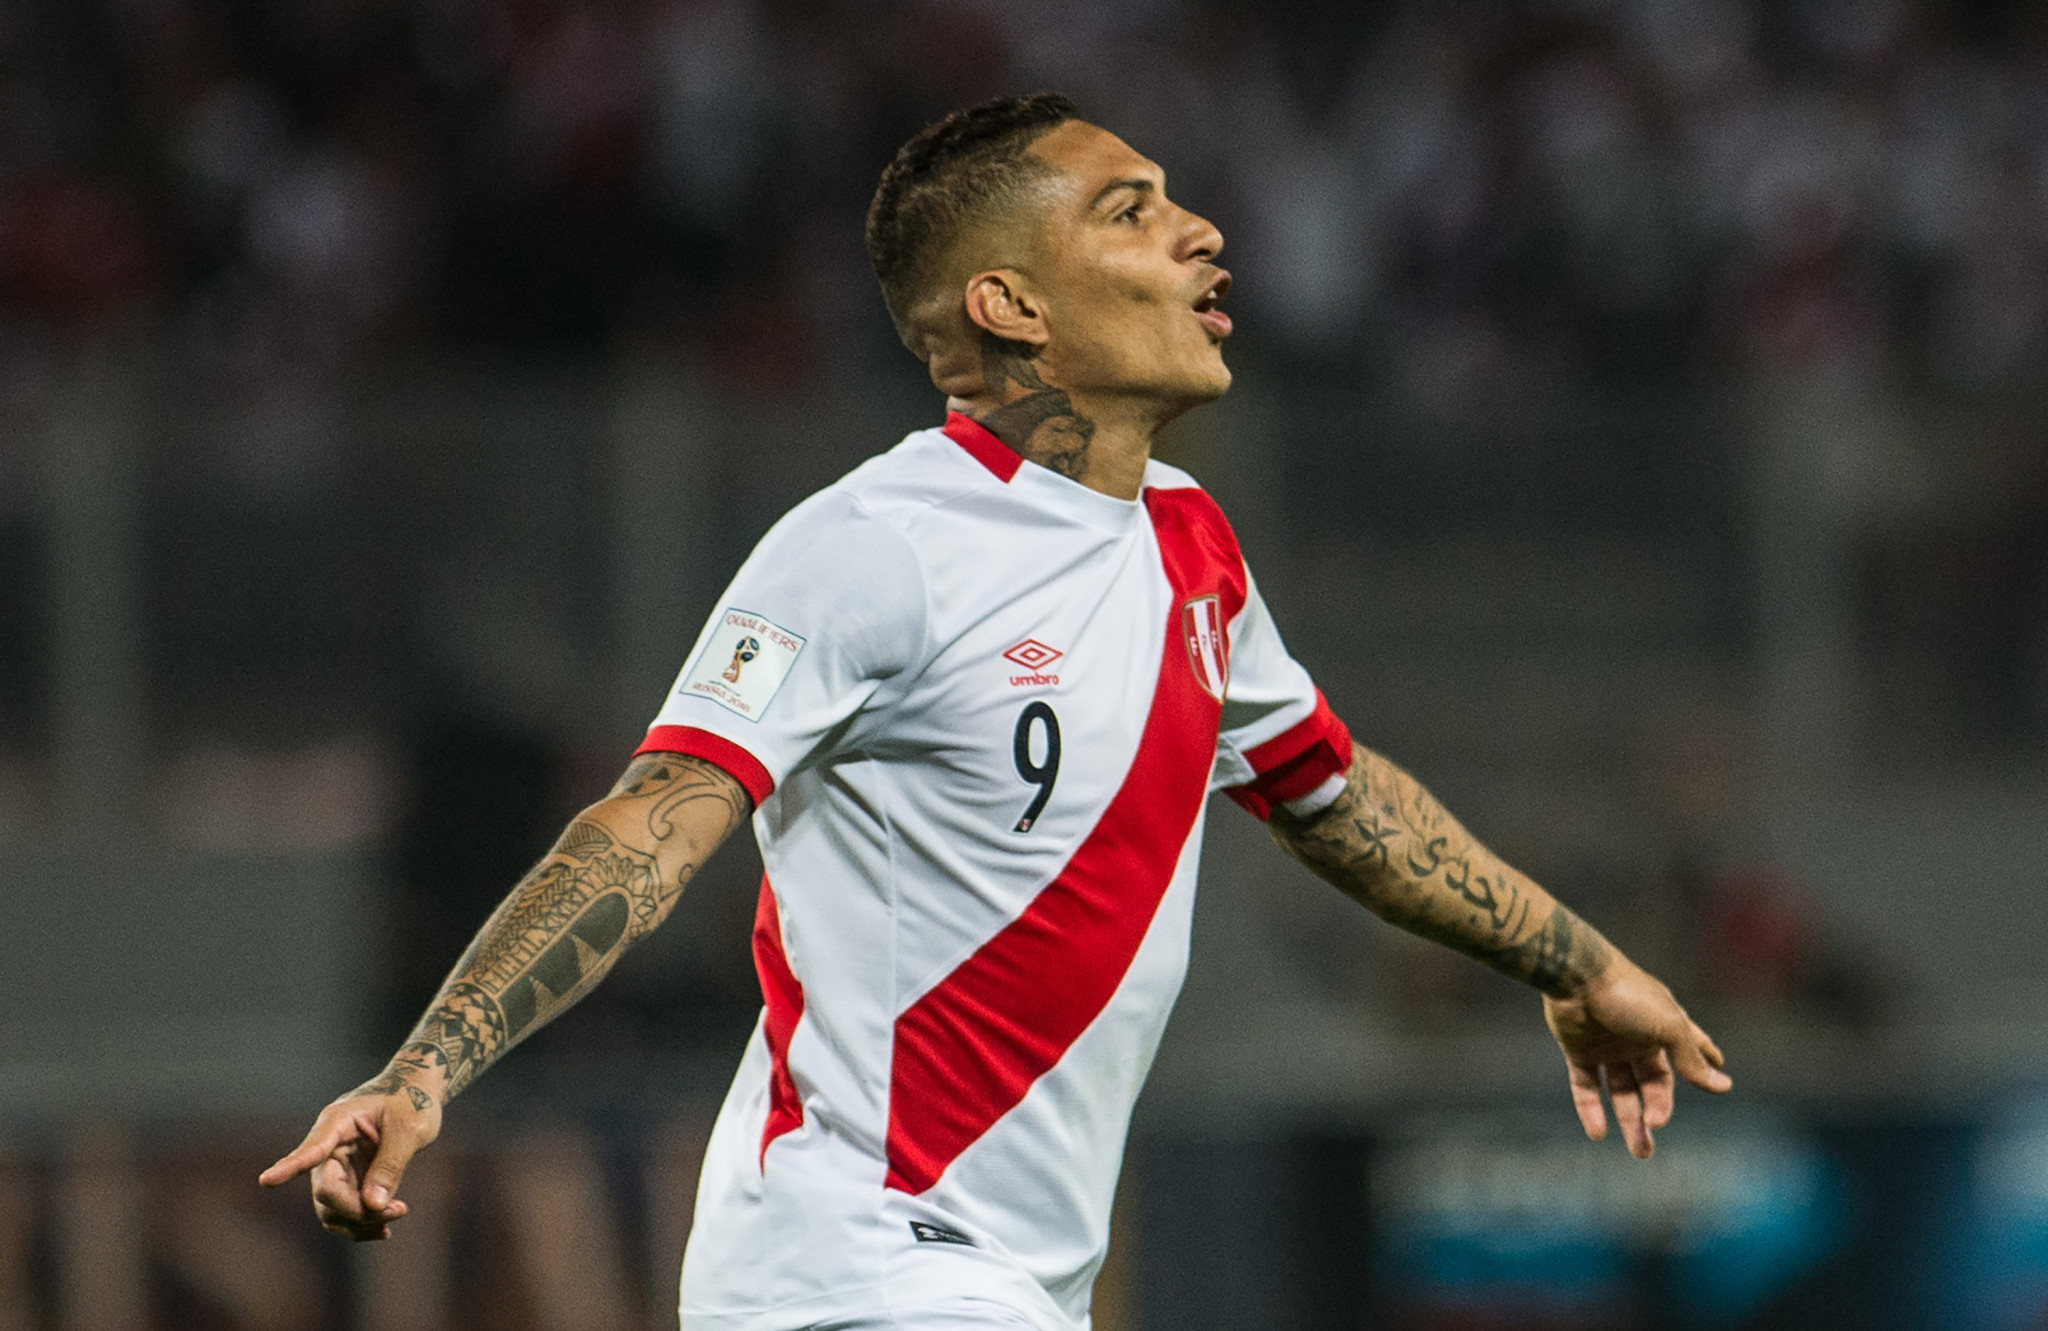 Paolo Guerrero's eligibility to play at this summer's World Cup is still up in the air ©Getty Images